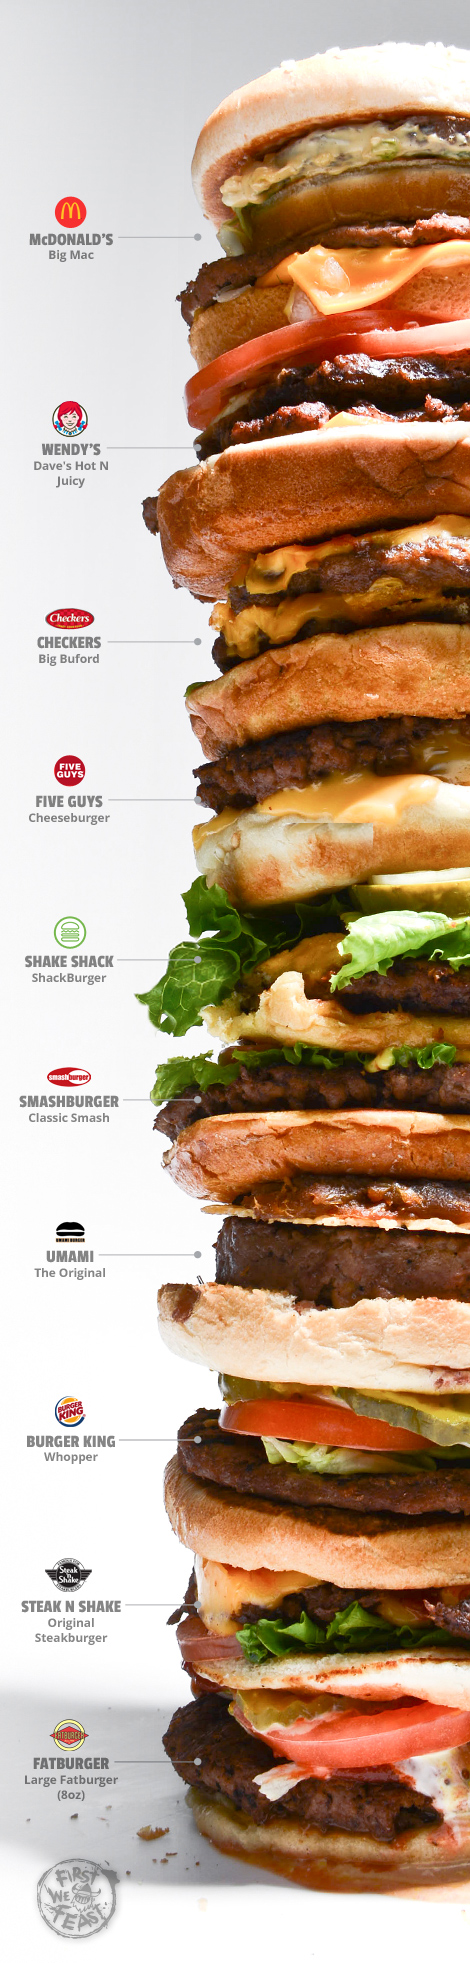 uber burger layers The Uber Burger: 10 Patties, No Regrets